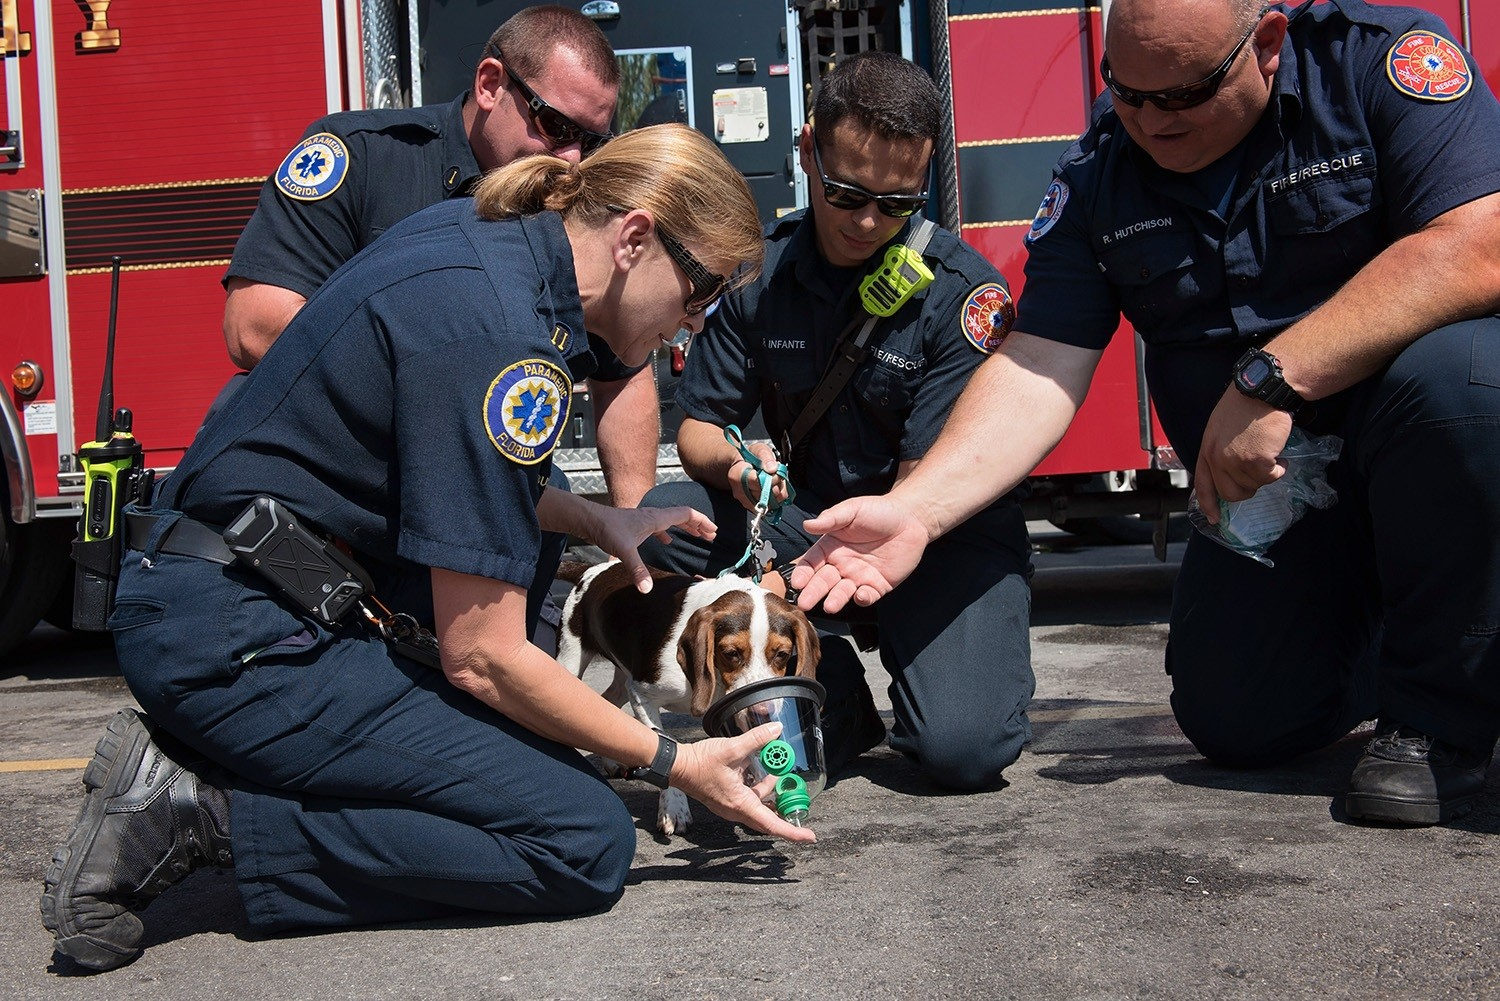 Clay County Fire Capt. Bernita Bush, left, gives water to a beagle on May 11 at the Peoria Road fire station near Orange Park. Clay Humane donated pet oxygen masks to the fire department last week.